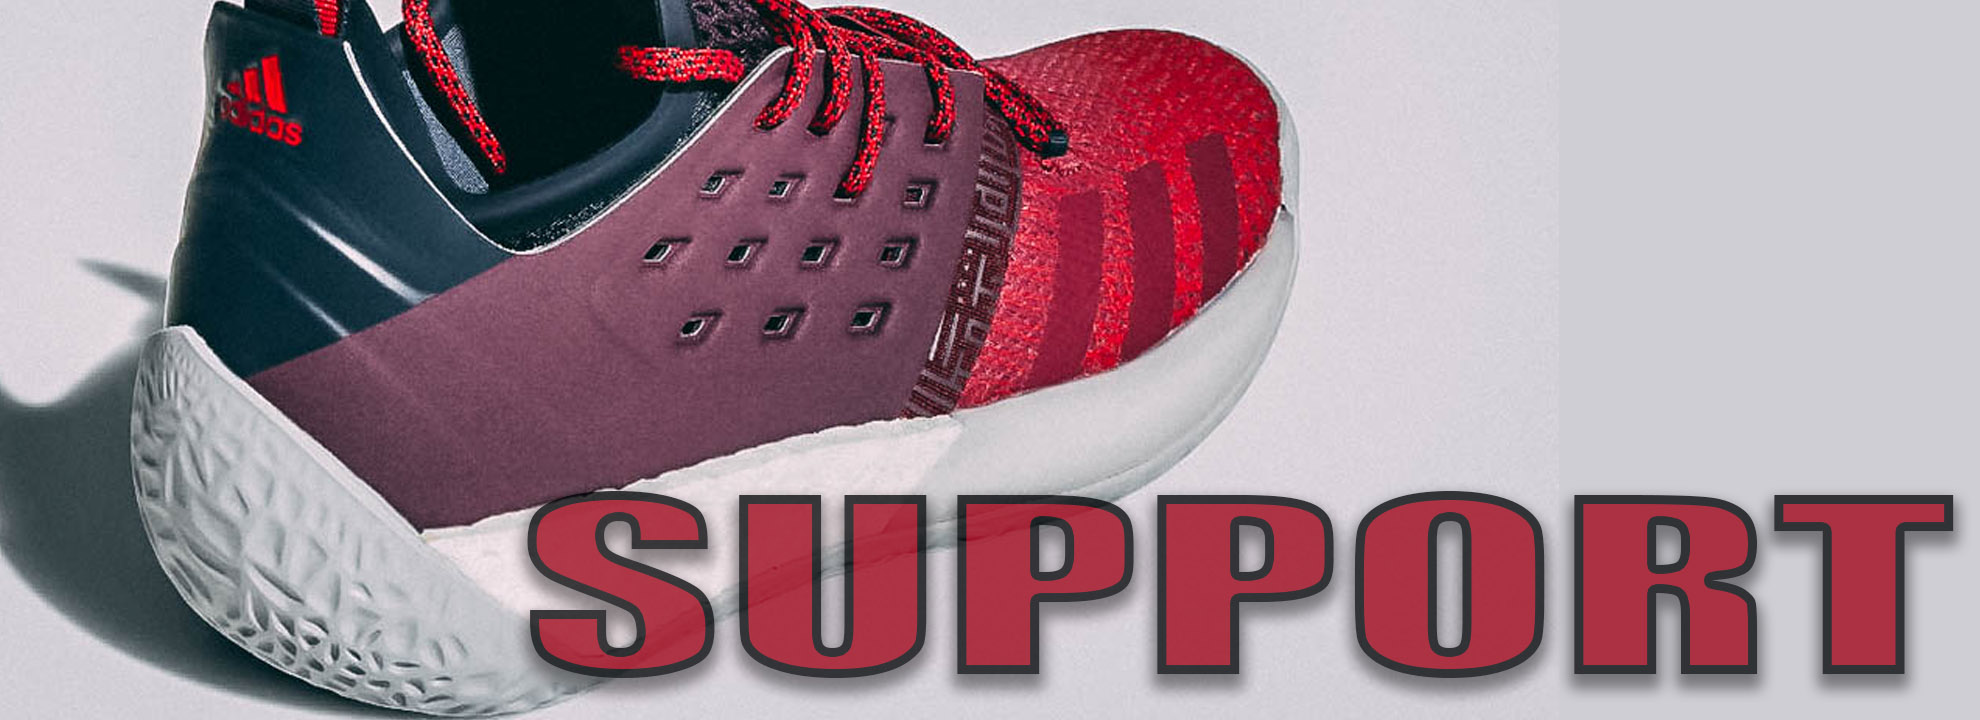 quality design fe870 ac7c8 adidas harden vol 2 performance review anotherpair support